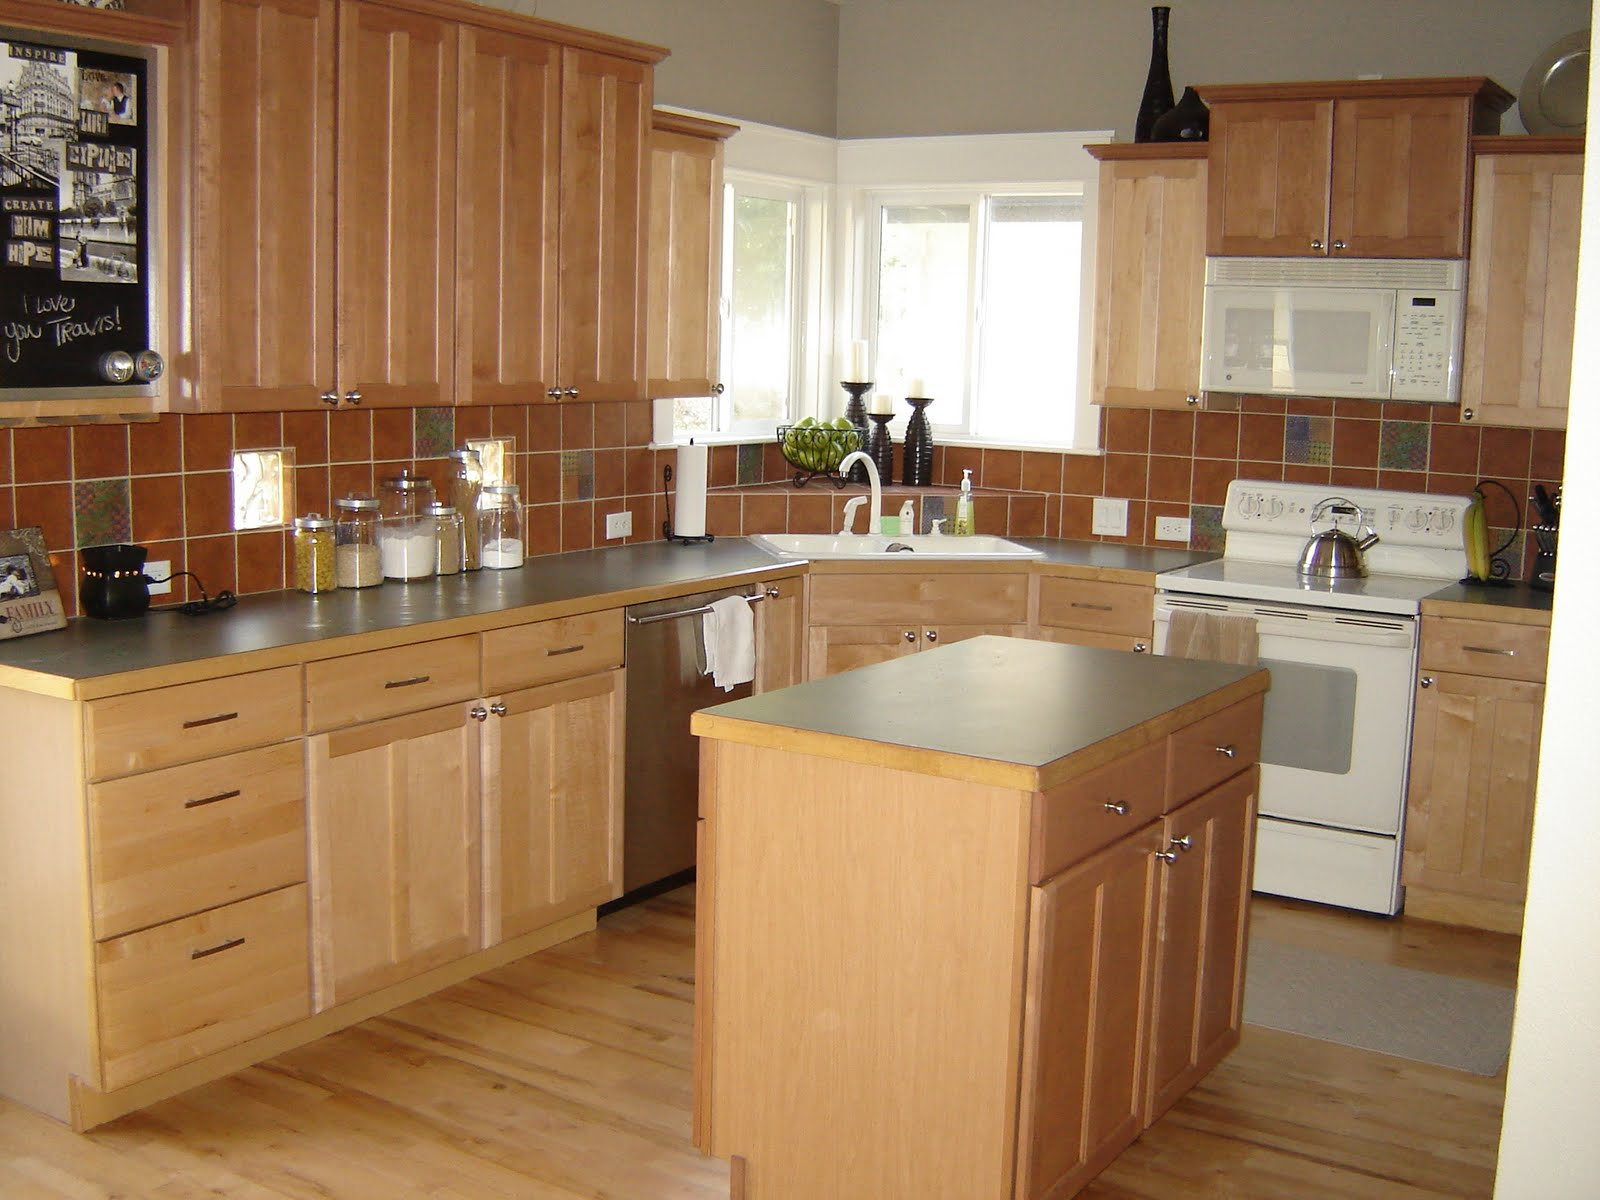 Inspiring kitchen countertops ideas and tips which can for Kitchen island with cupboards